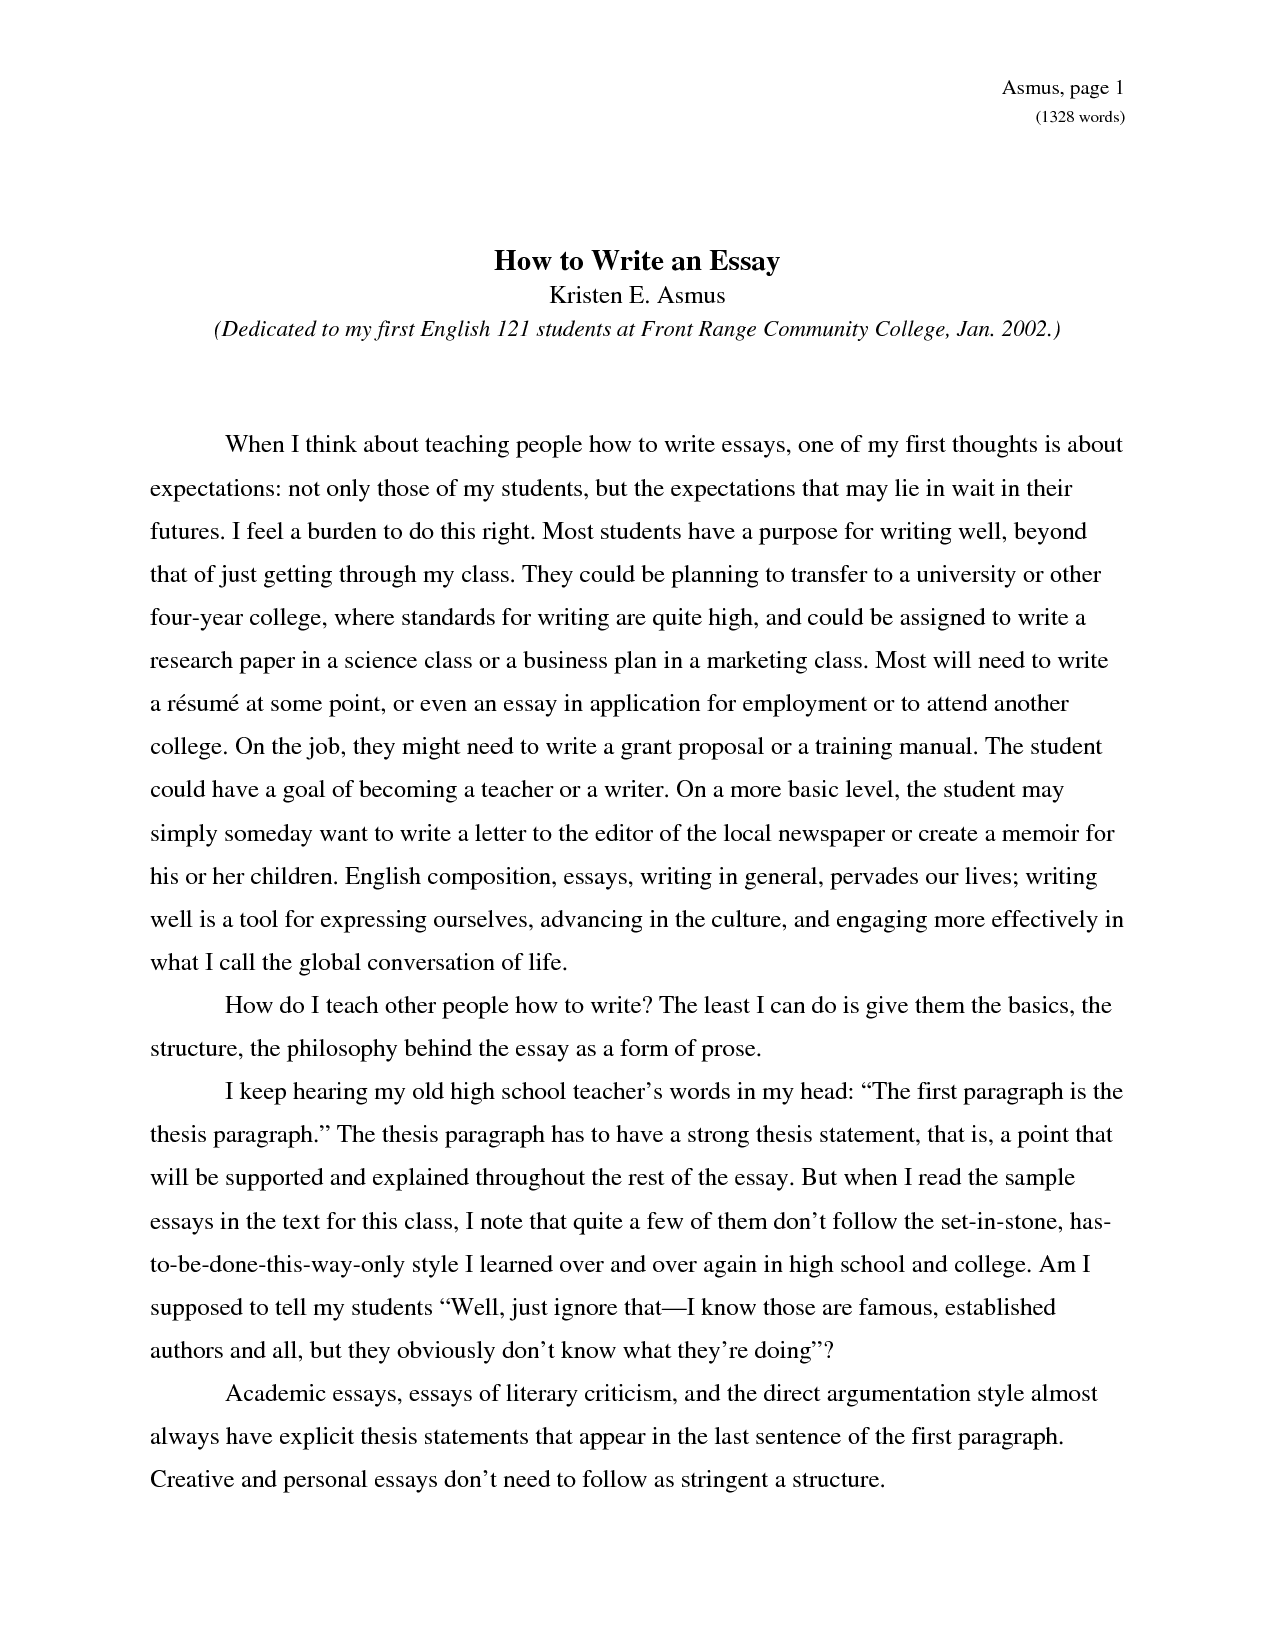 Writting a essay